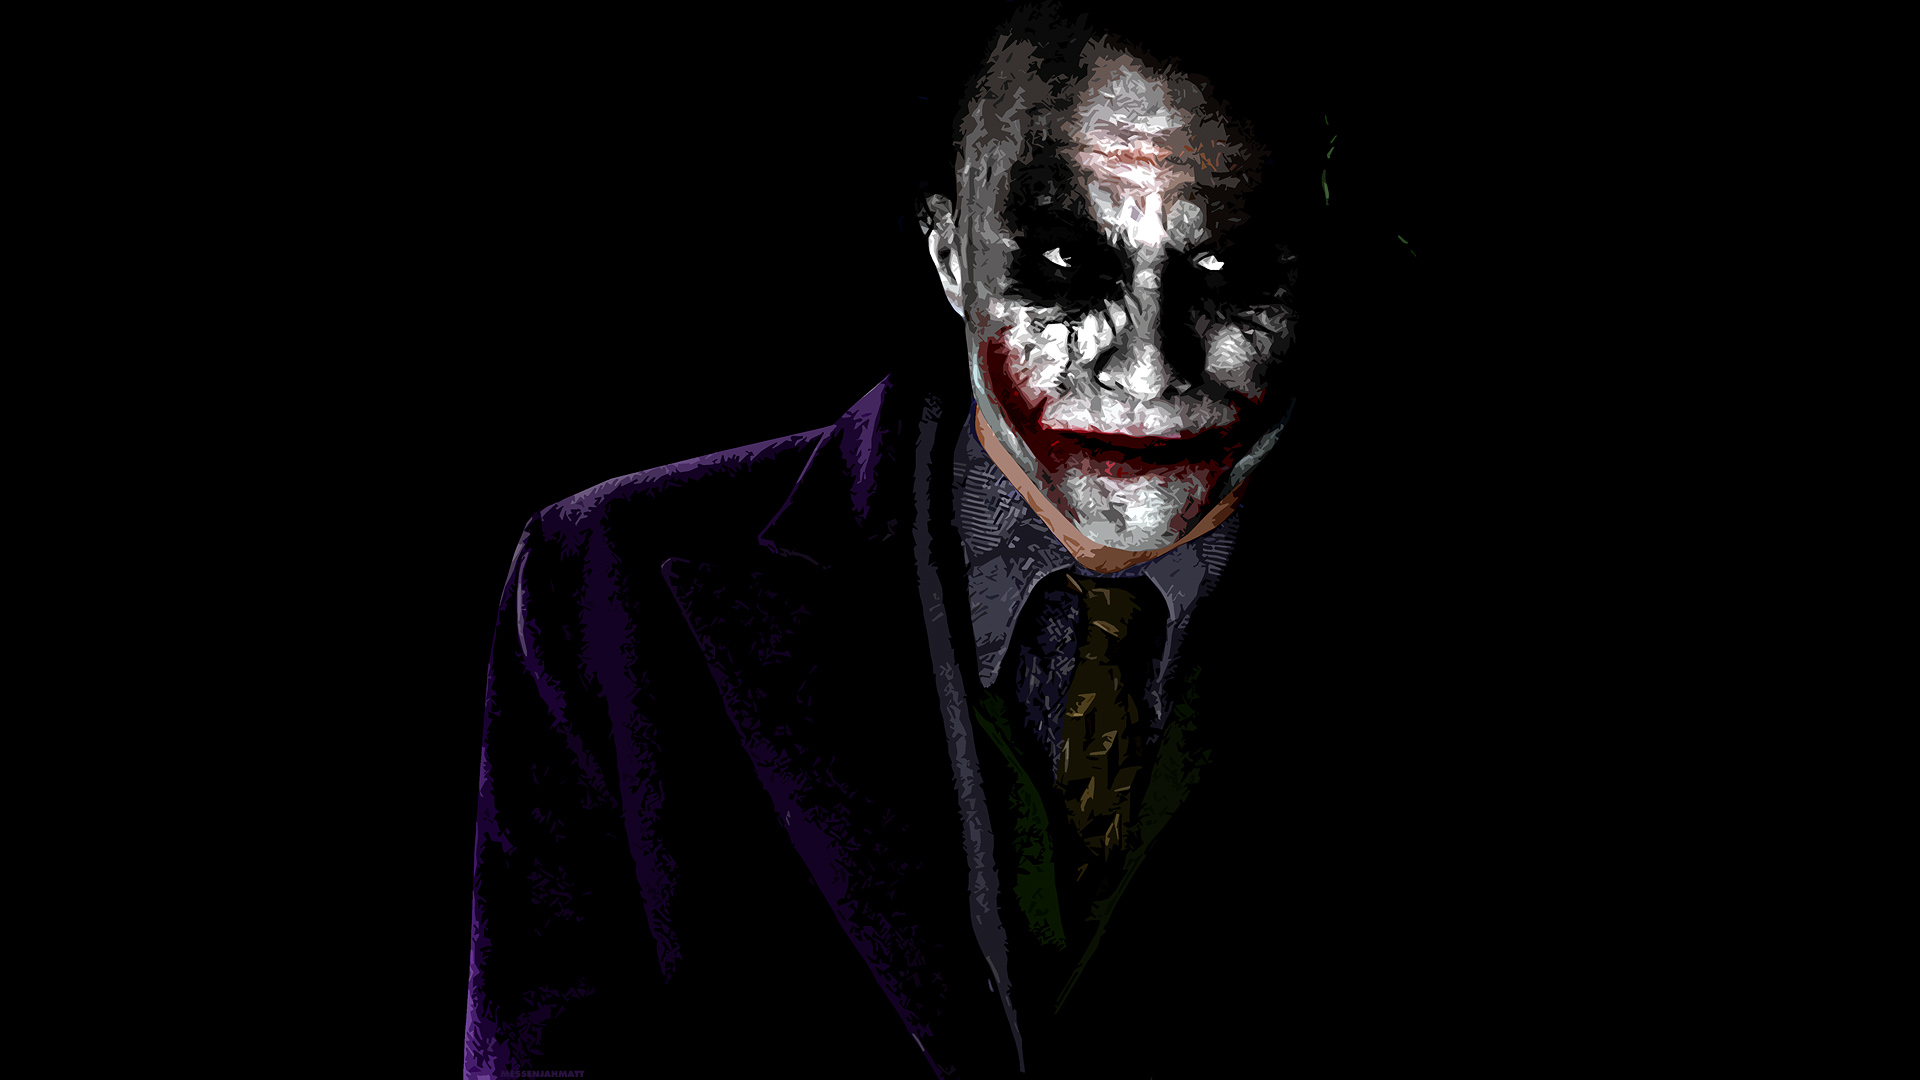 The Joker Full HD Wallpaper 1920x1080